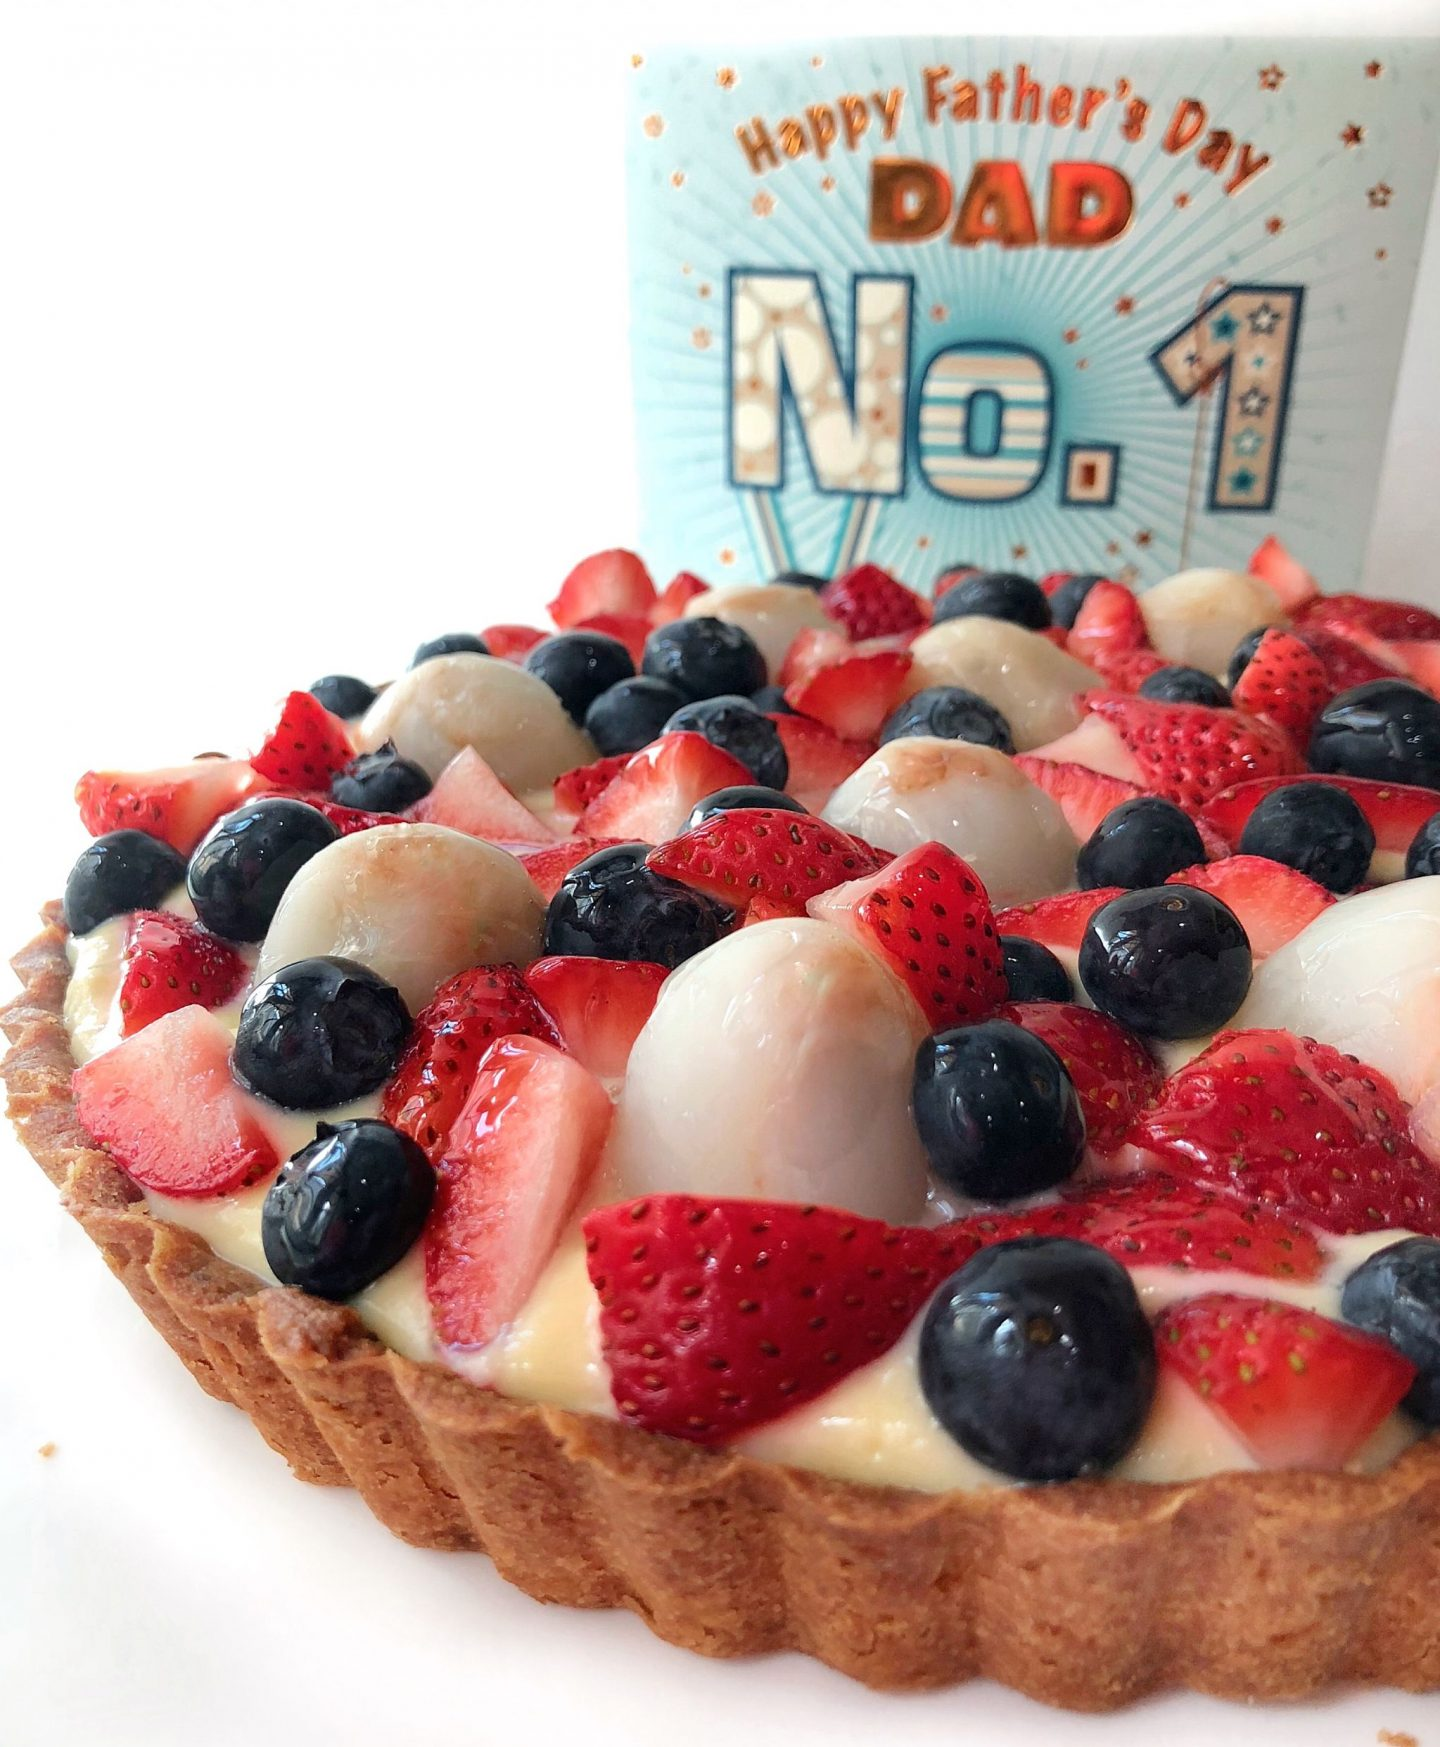 Fruit tart with creme patissiere